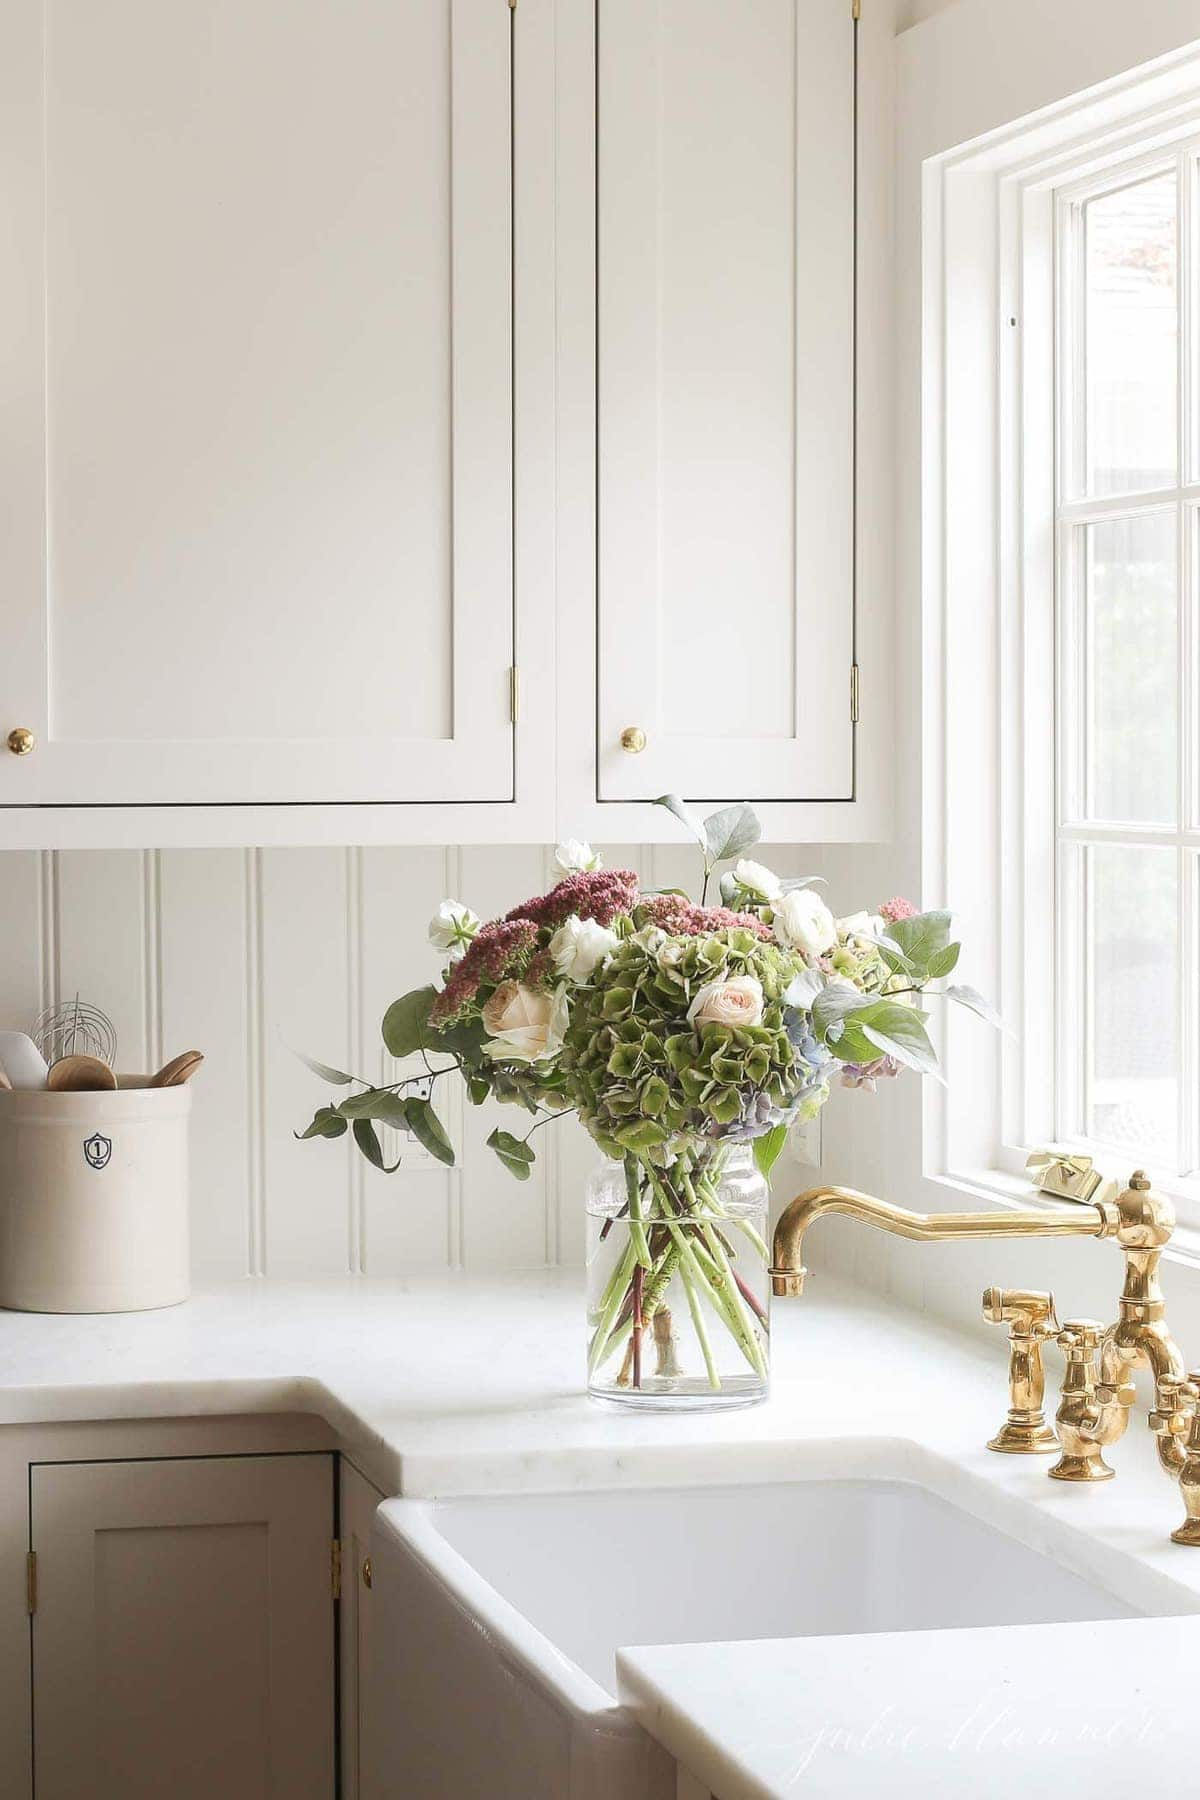 A bright and cozy home kitchen with white cabinets, brass faucet and a vase of flowers by the sink.